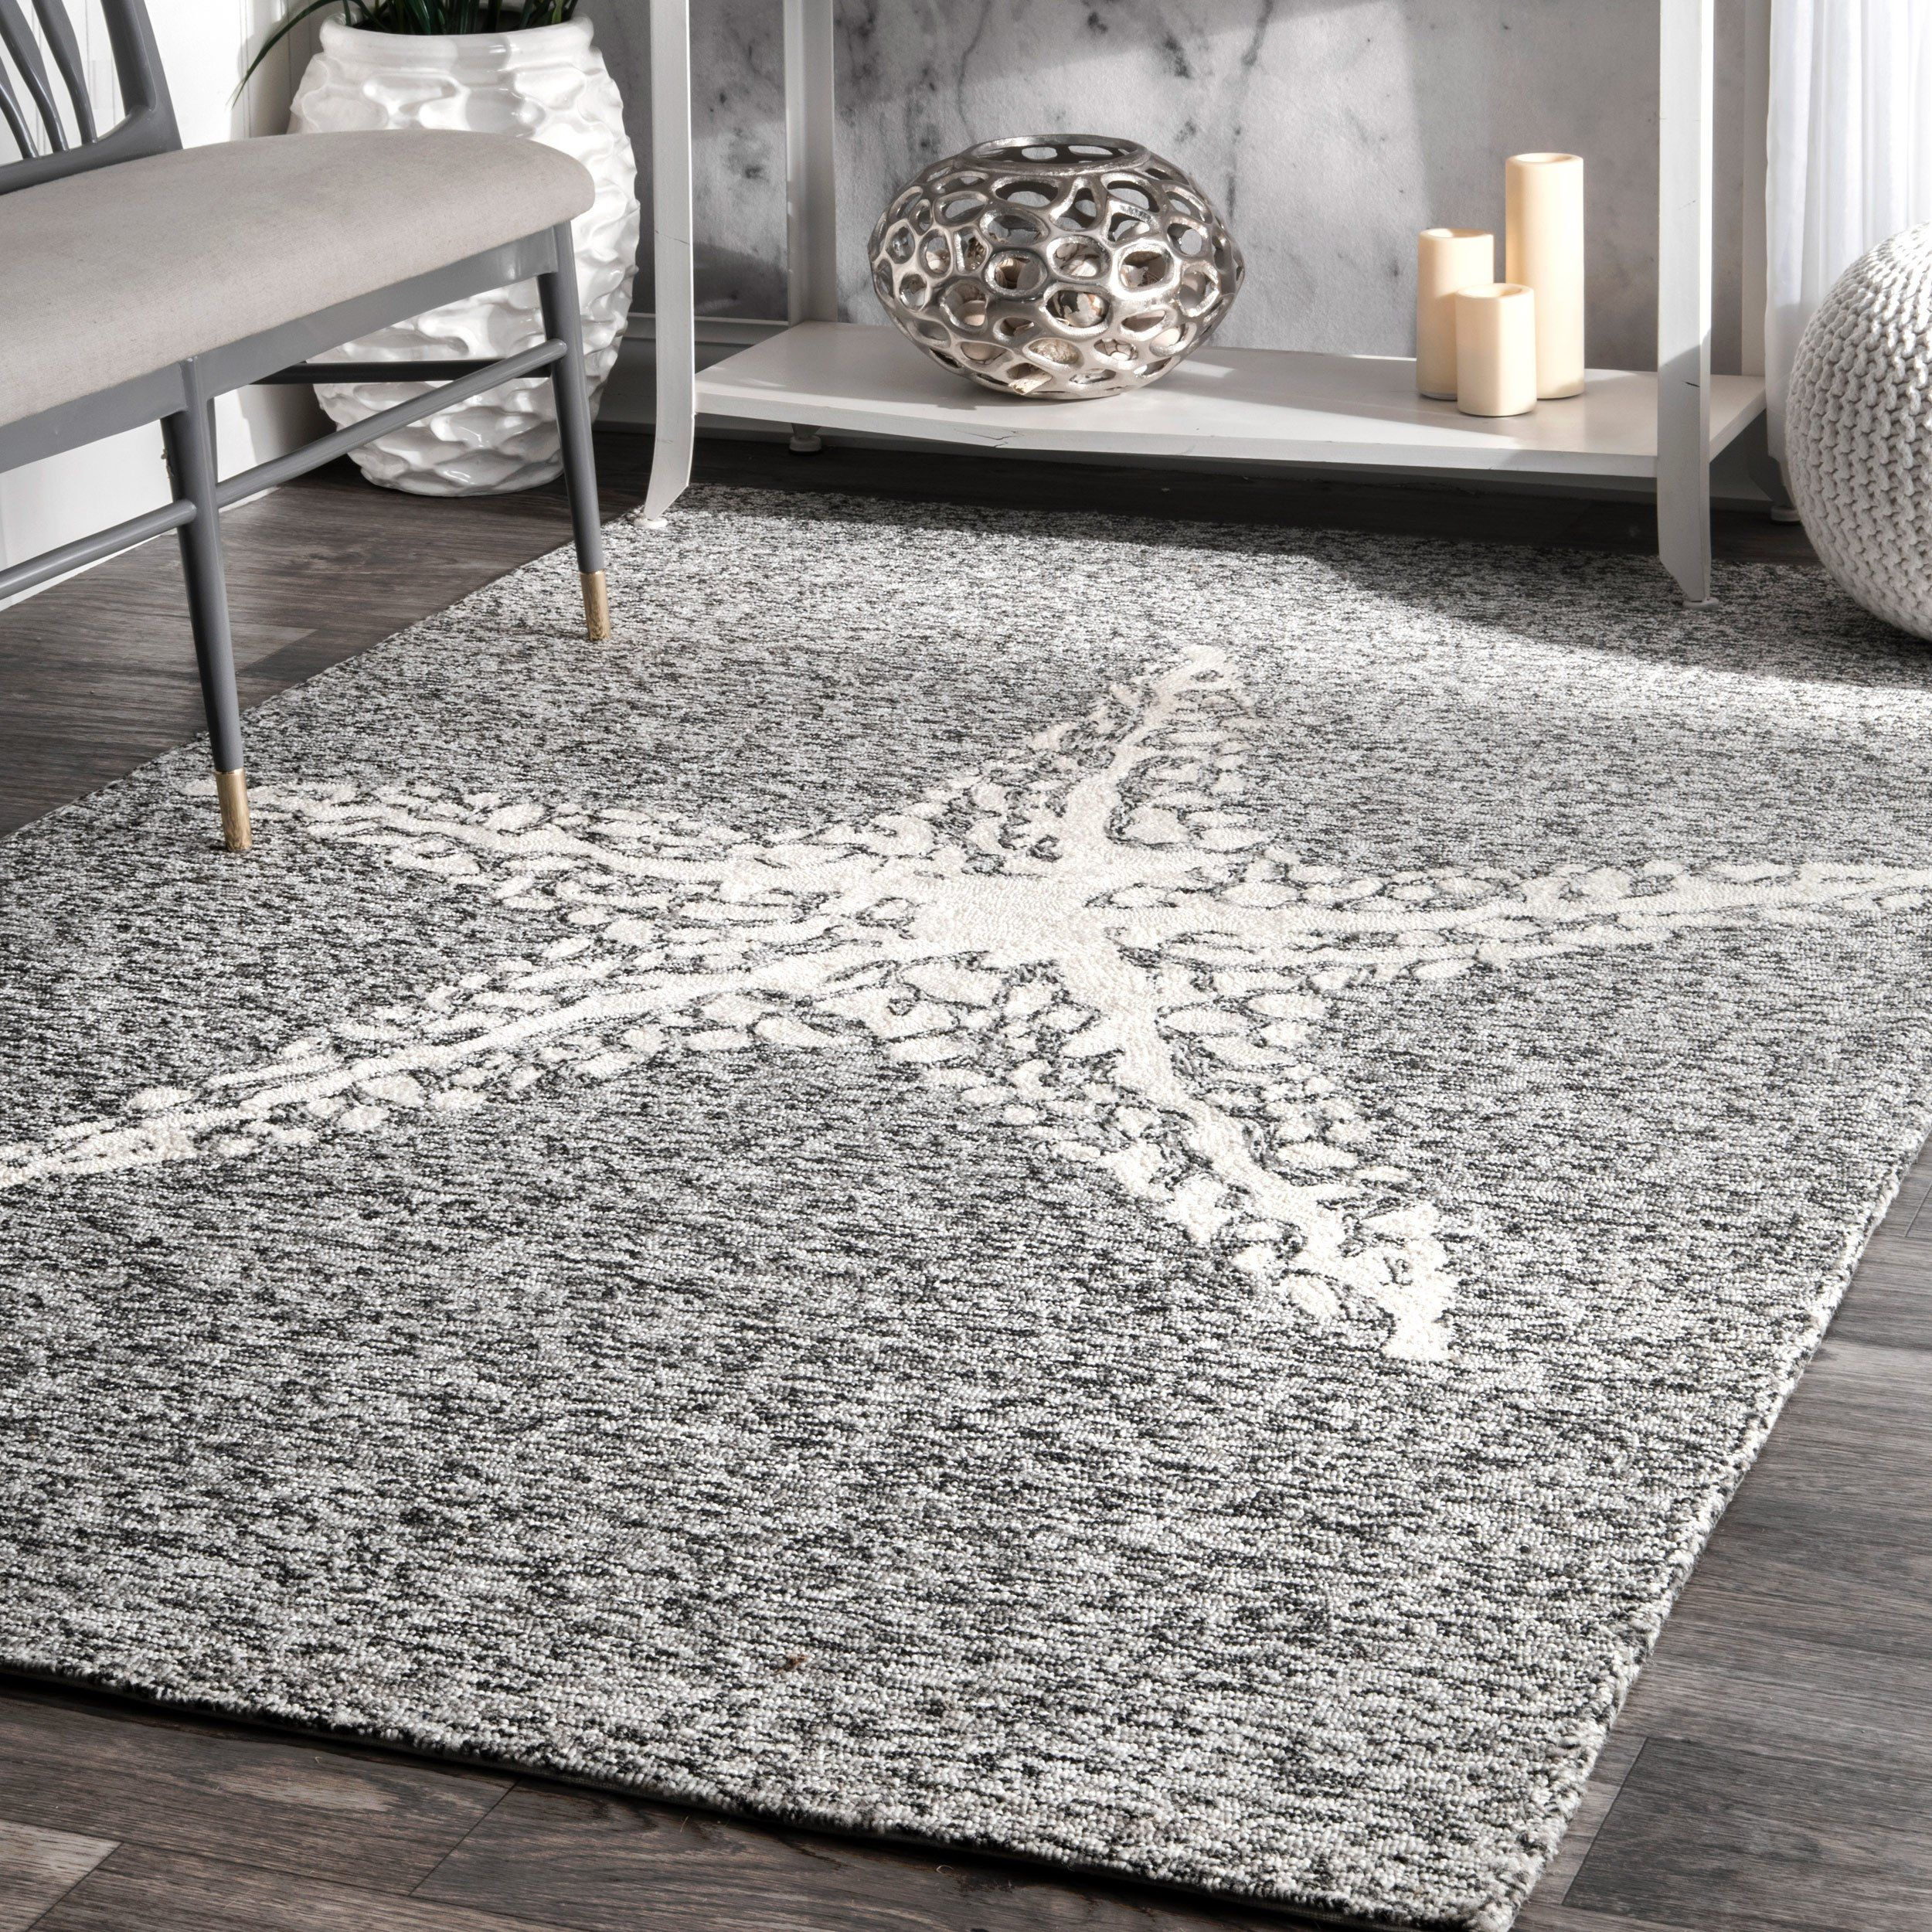 Hand Hooked Marine Indoor Outdoor Area Rug Outdoor With Images Indoor Outdoor Area Rugs Outdoor Area Rugs Indoor Outdoor Rugs